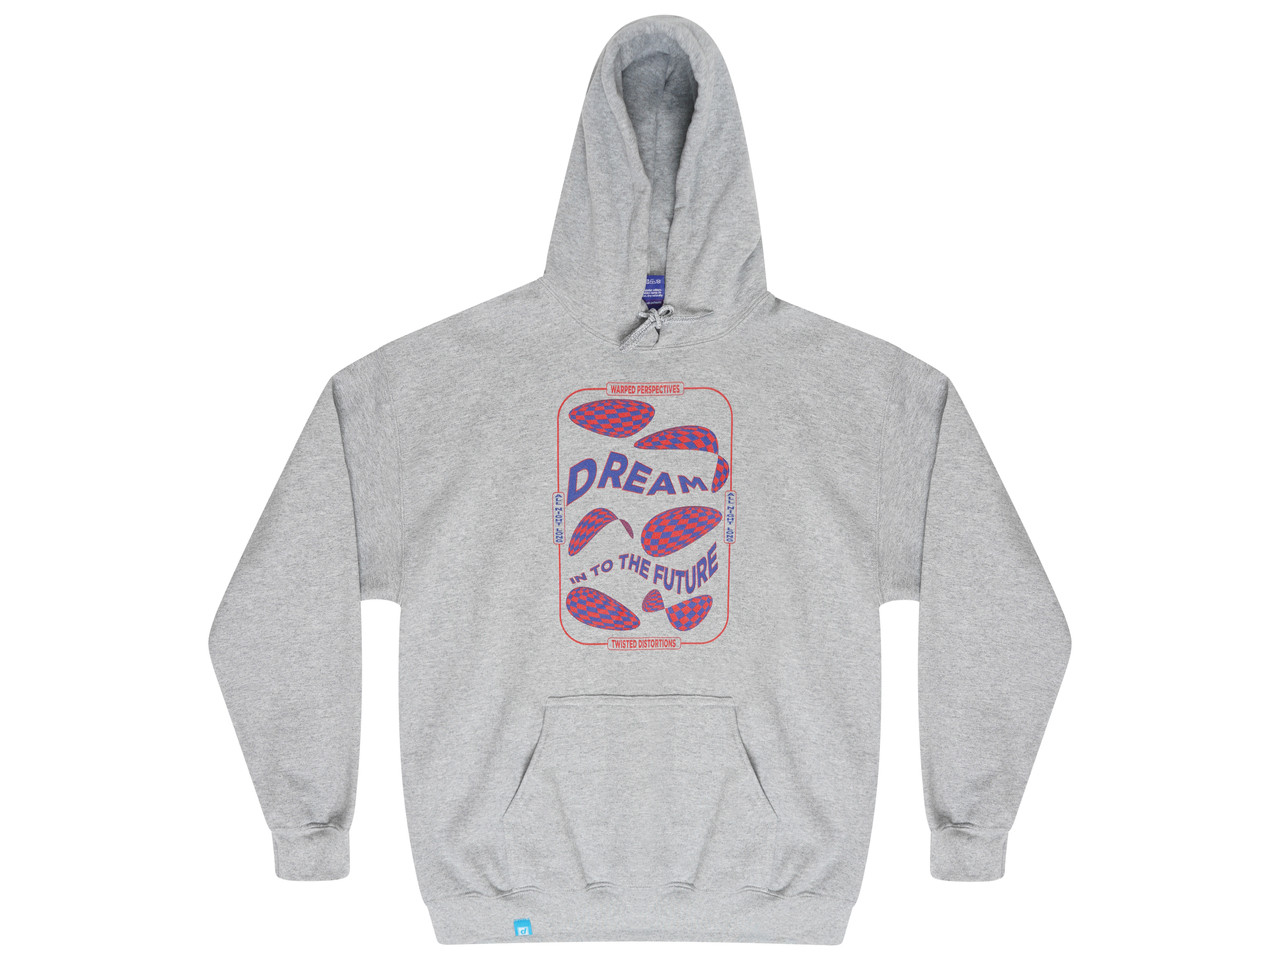 Grey Hoodie With Dream Into The Future Print